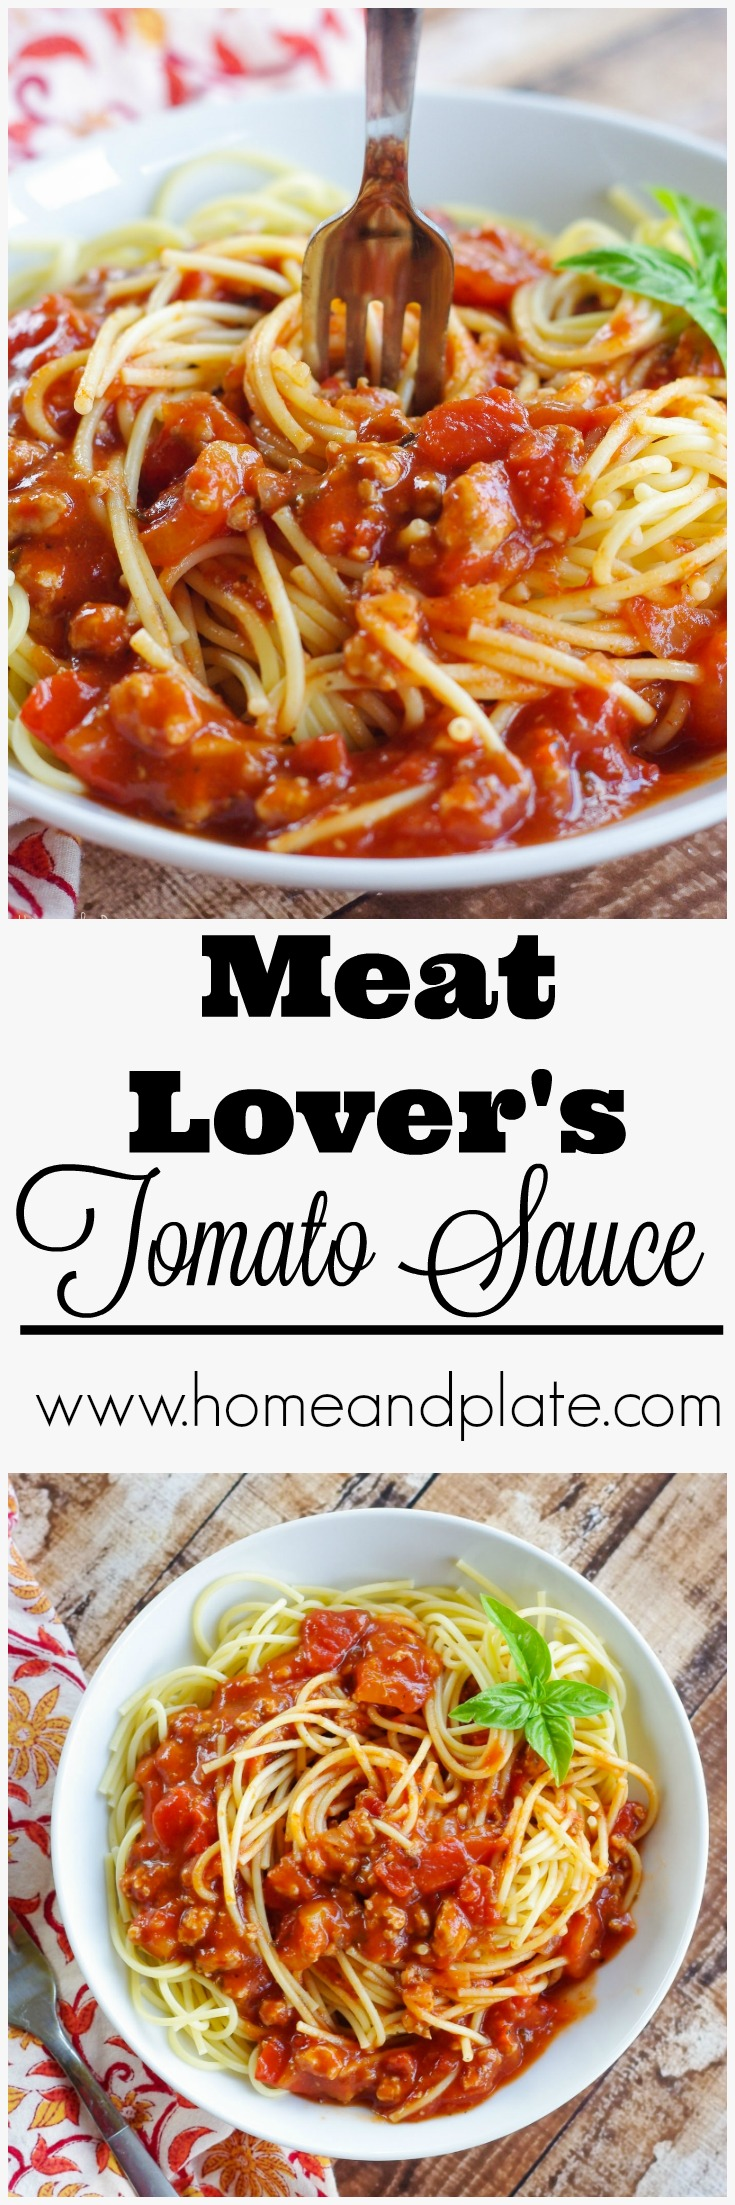 Meat Lover's Tomato Sauce | www.homeandplate.com | Never buy tomato sauce in a jar again! Tomato sauce made from scratch takes 30 minutes and tastes a million times better than the jarred variety.